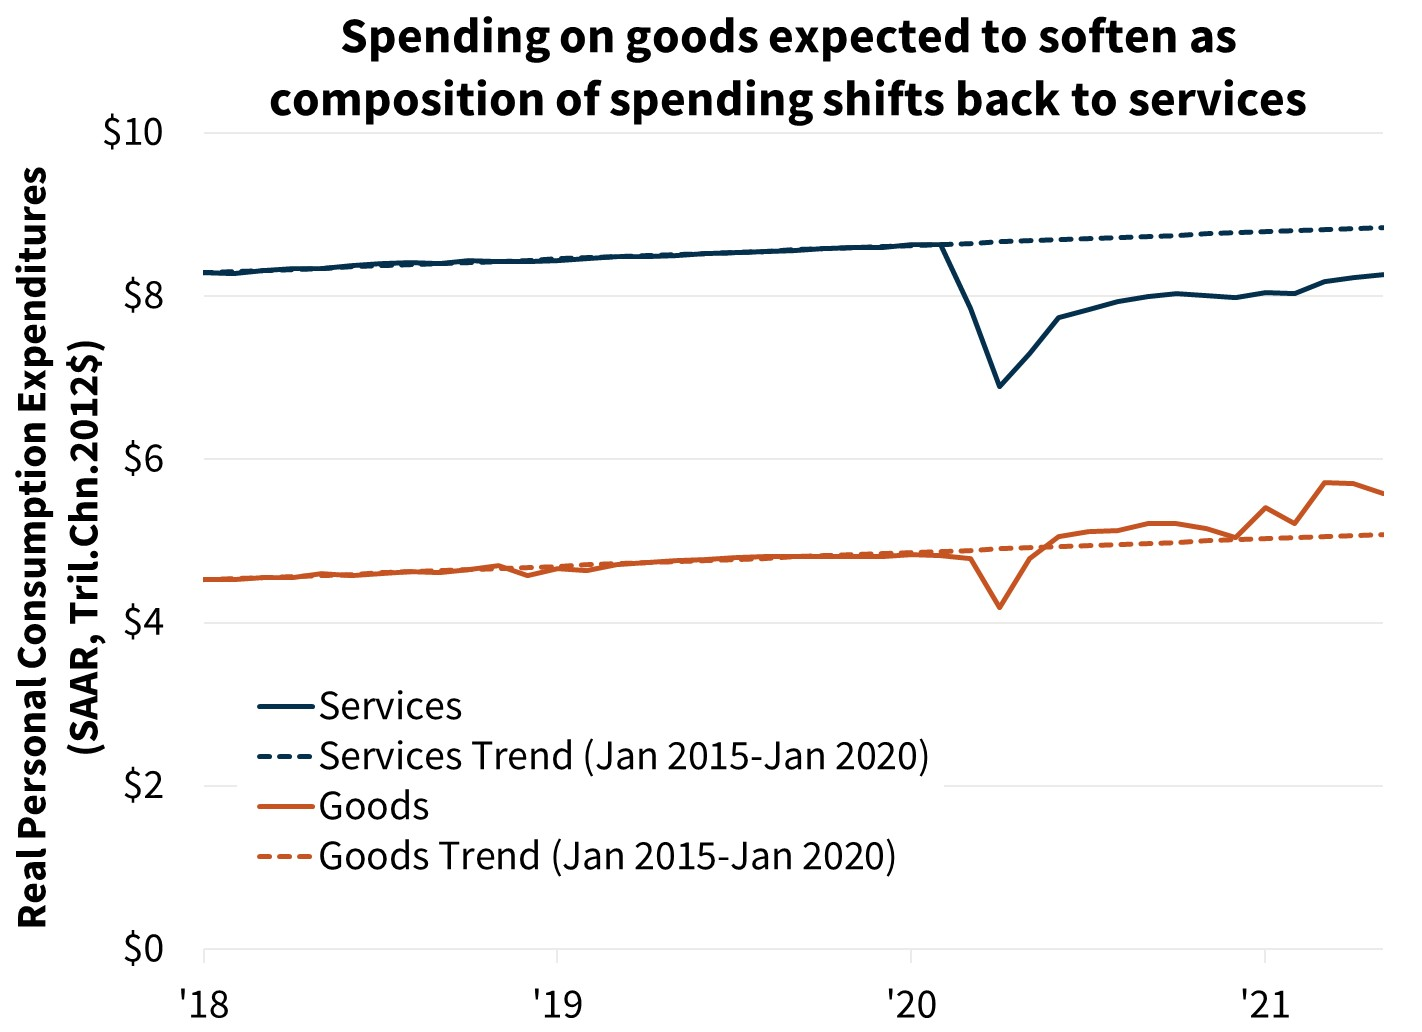 Spending on goods expected to soften as composition of spending shifts back to services